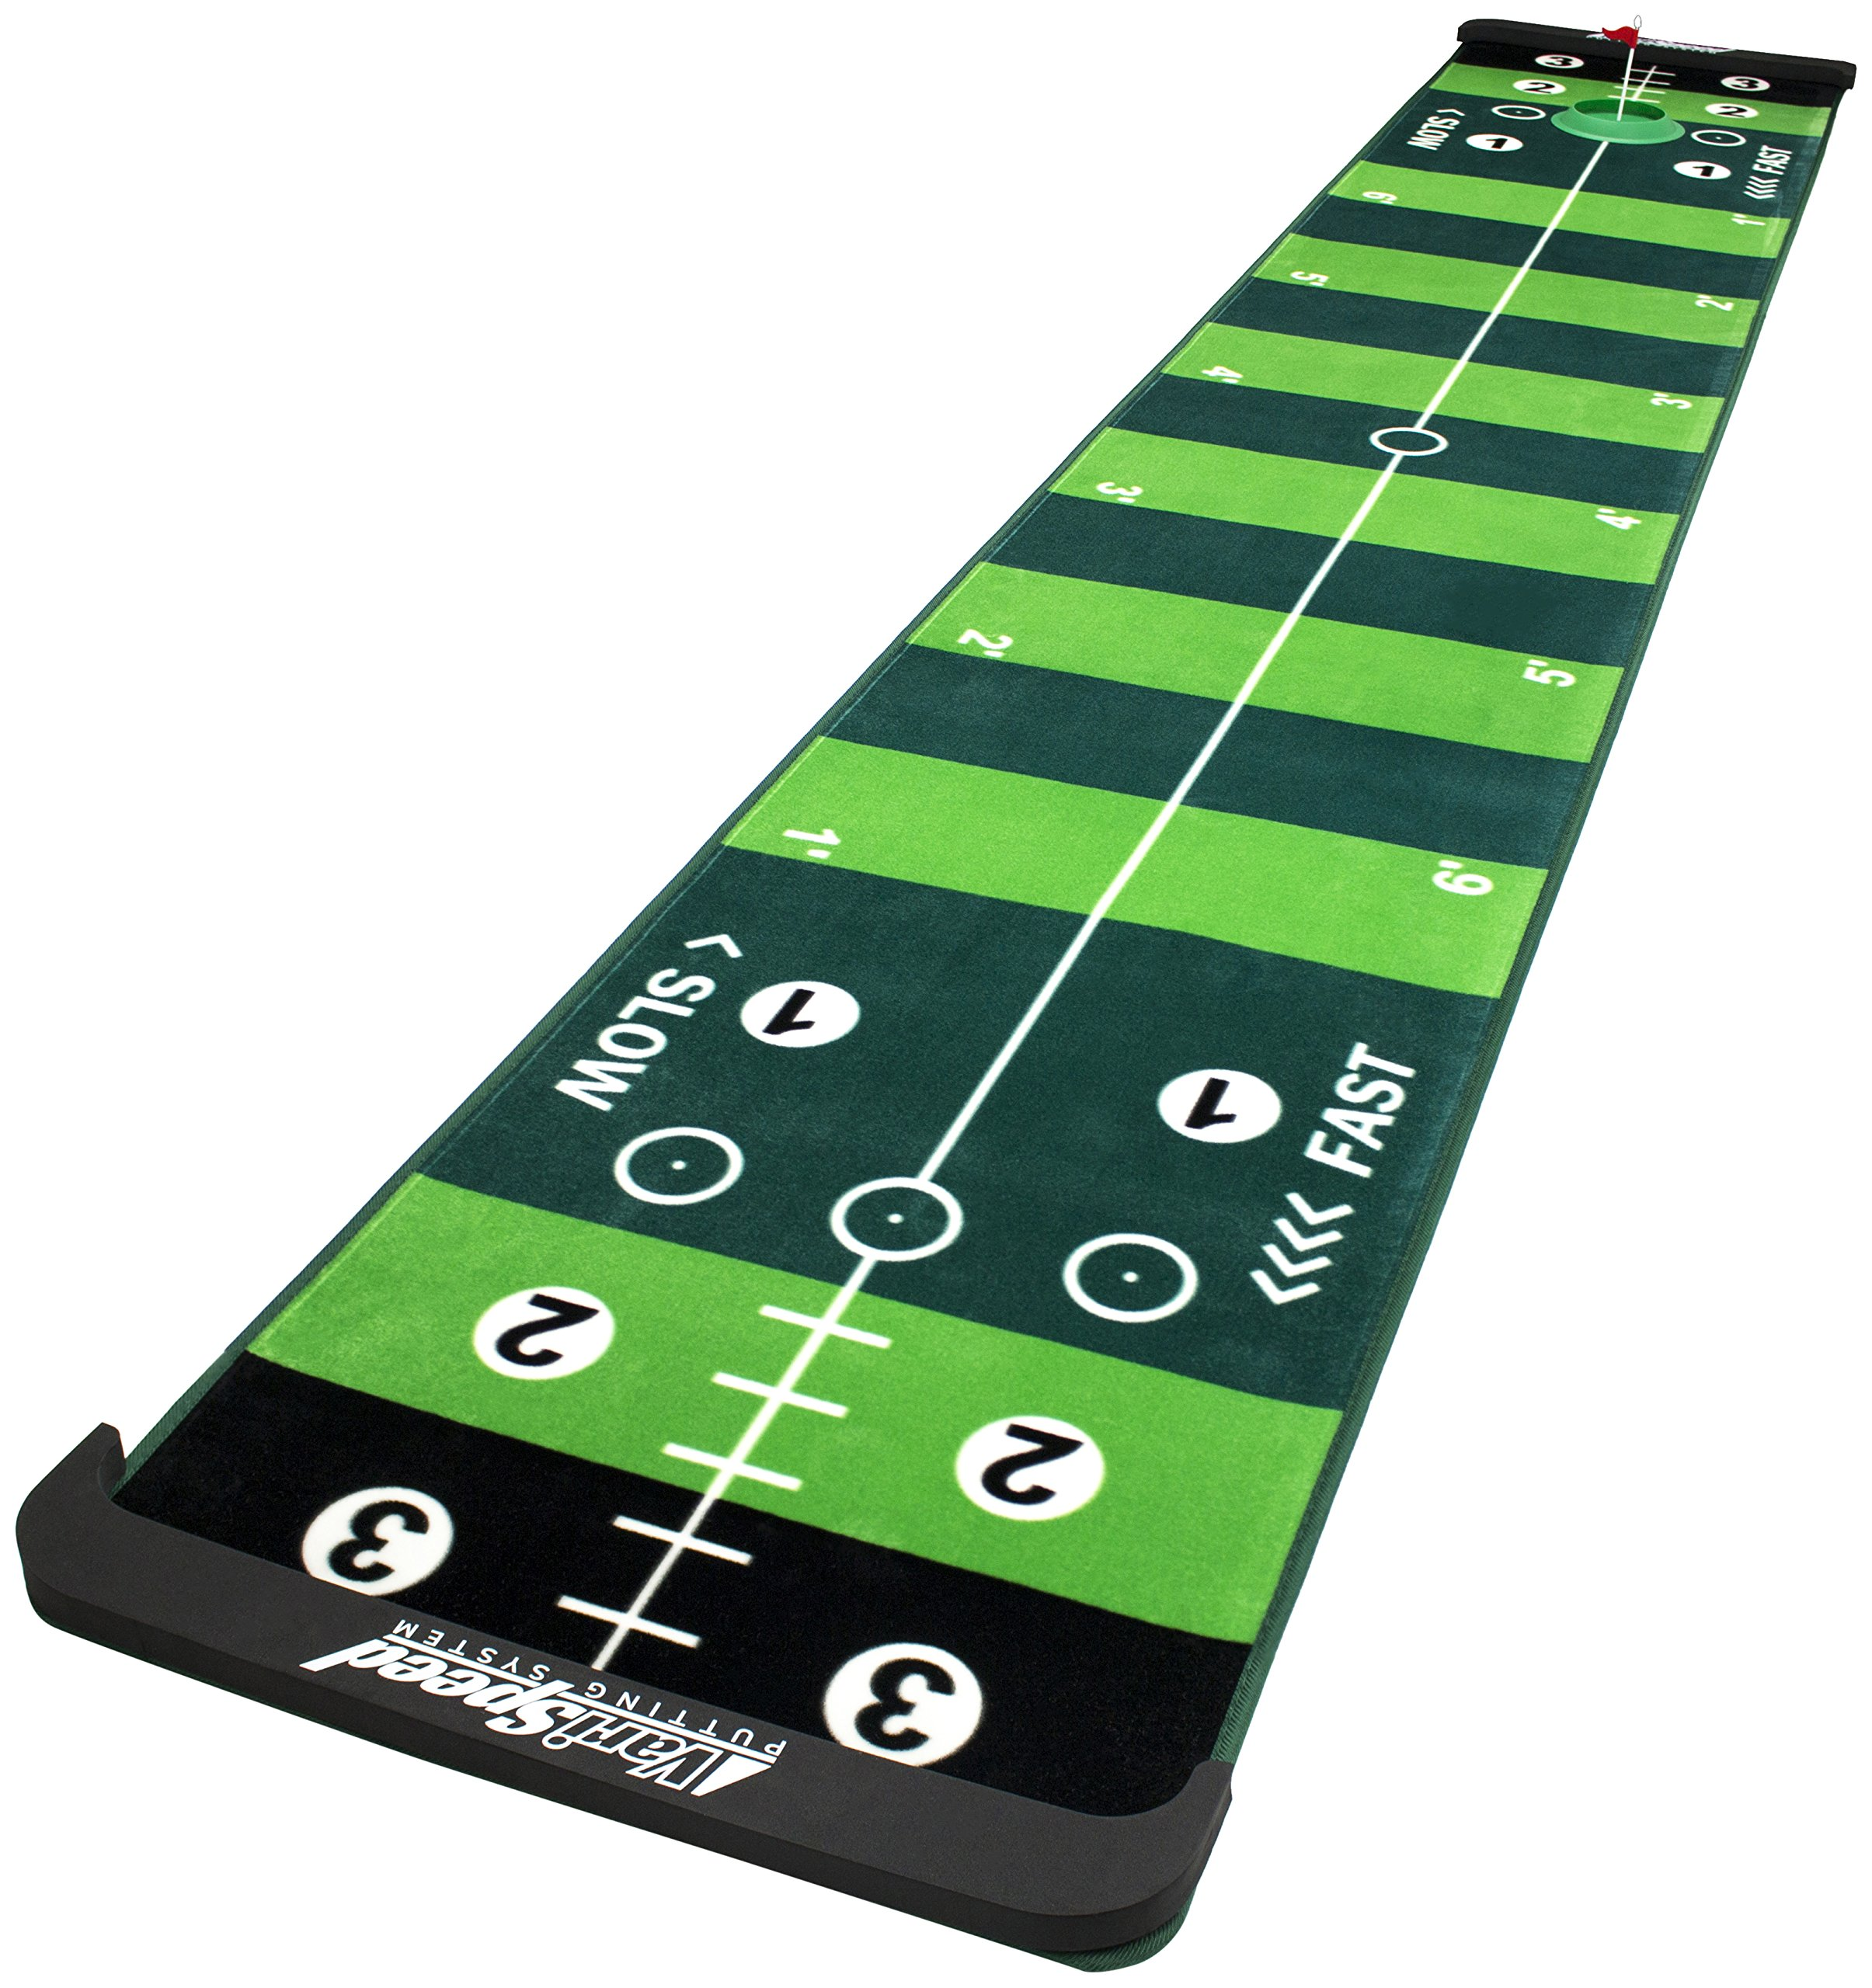 VariSpeed Putting System - Practice 4 Different Speeds On One Mat! by ProActive Sports